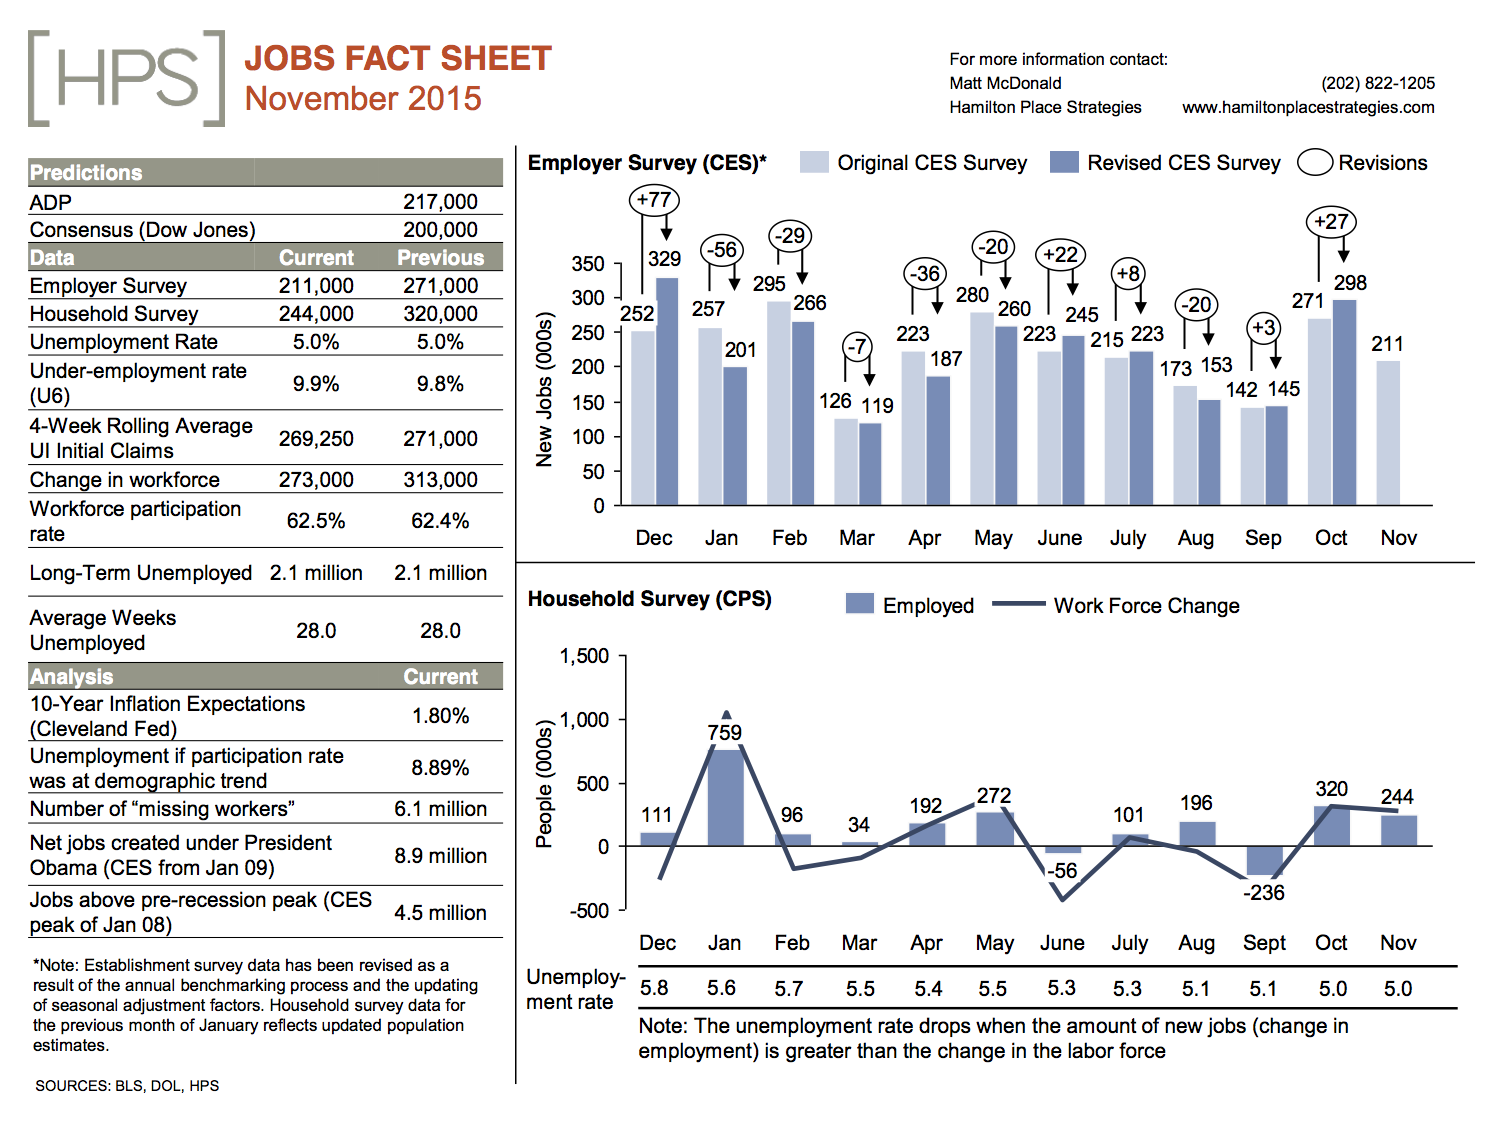 november20jobs20day20fact20sheet20